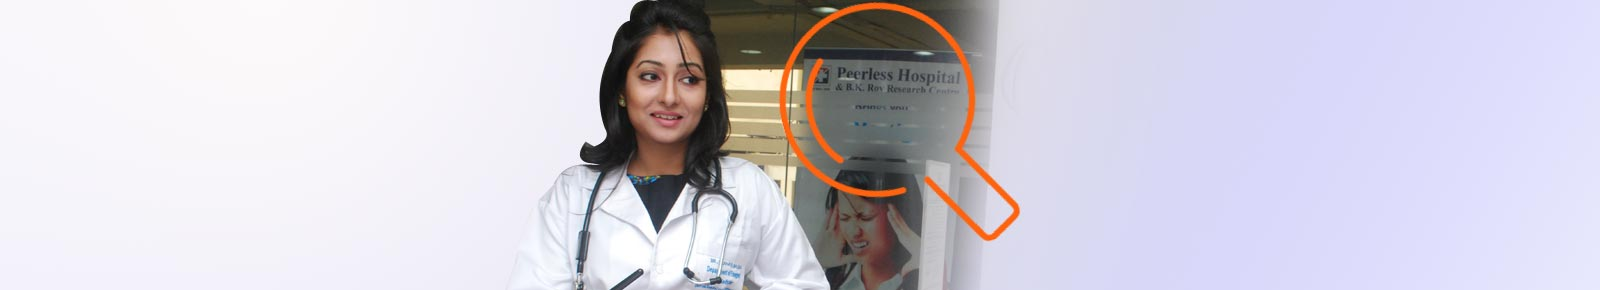 Welcome to Peerless Hospital::Find A Doctor